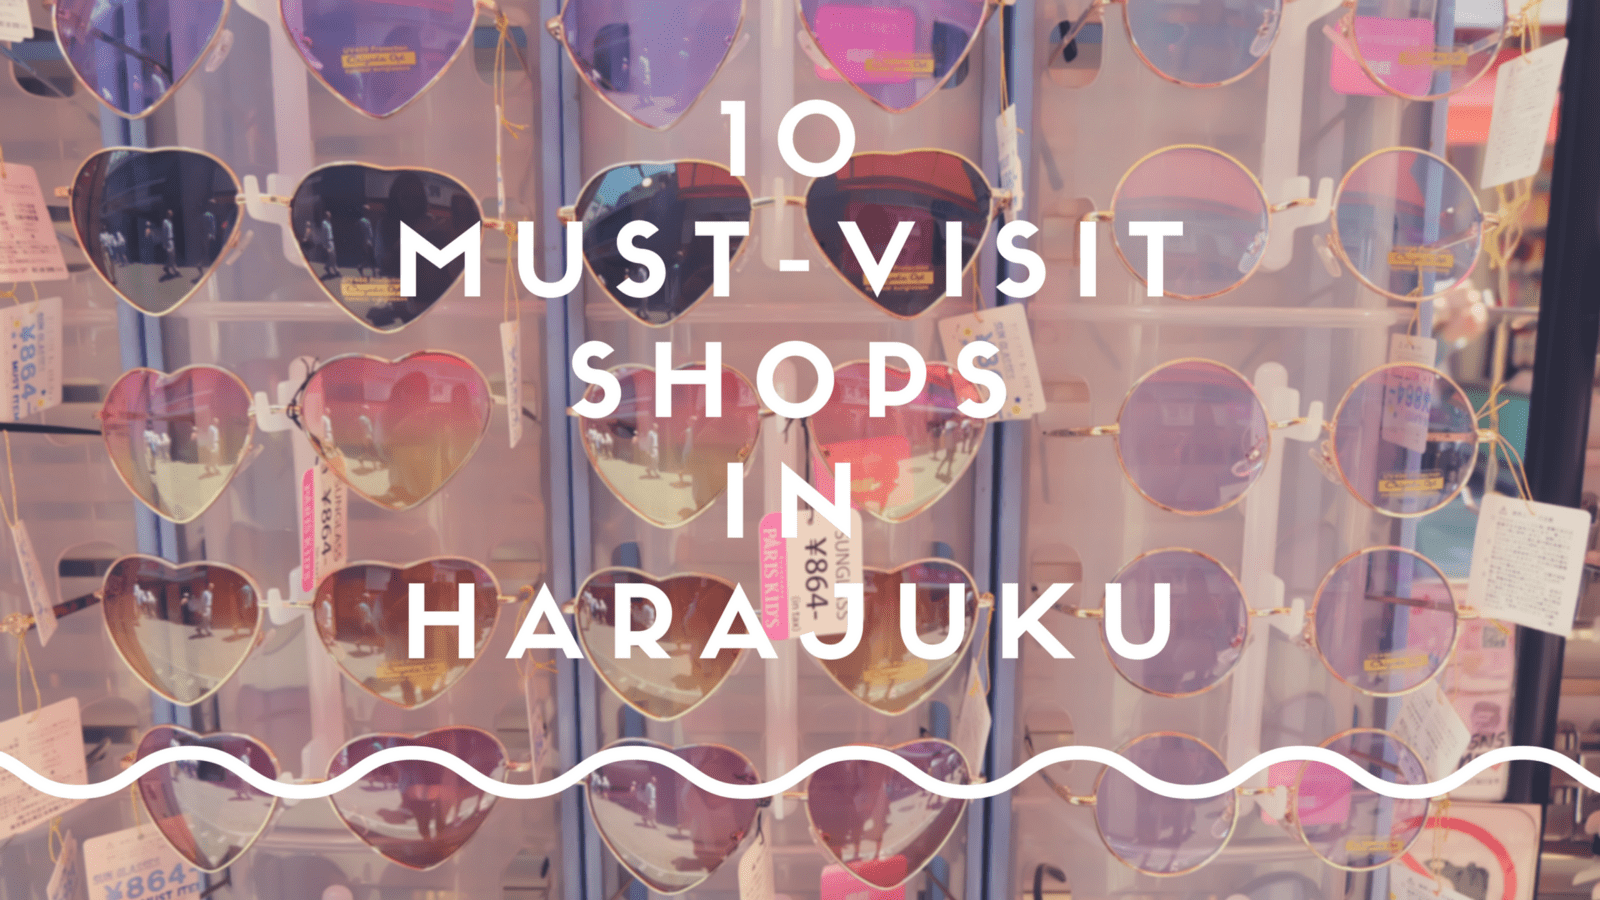 Harajuku Shopping Guide: 10 Best Shops in Harajuku